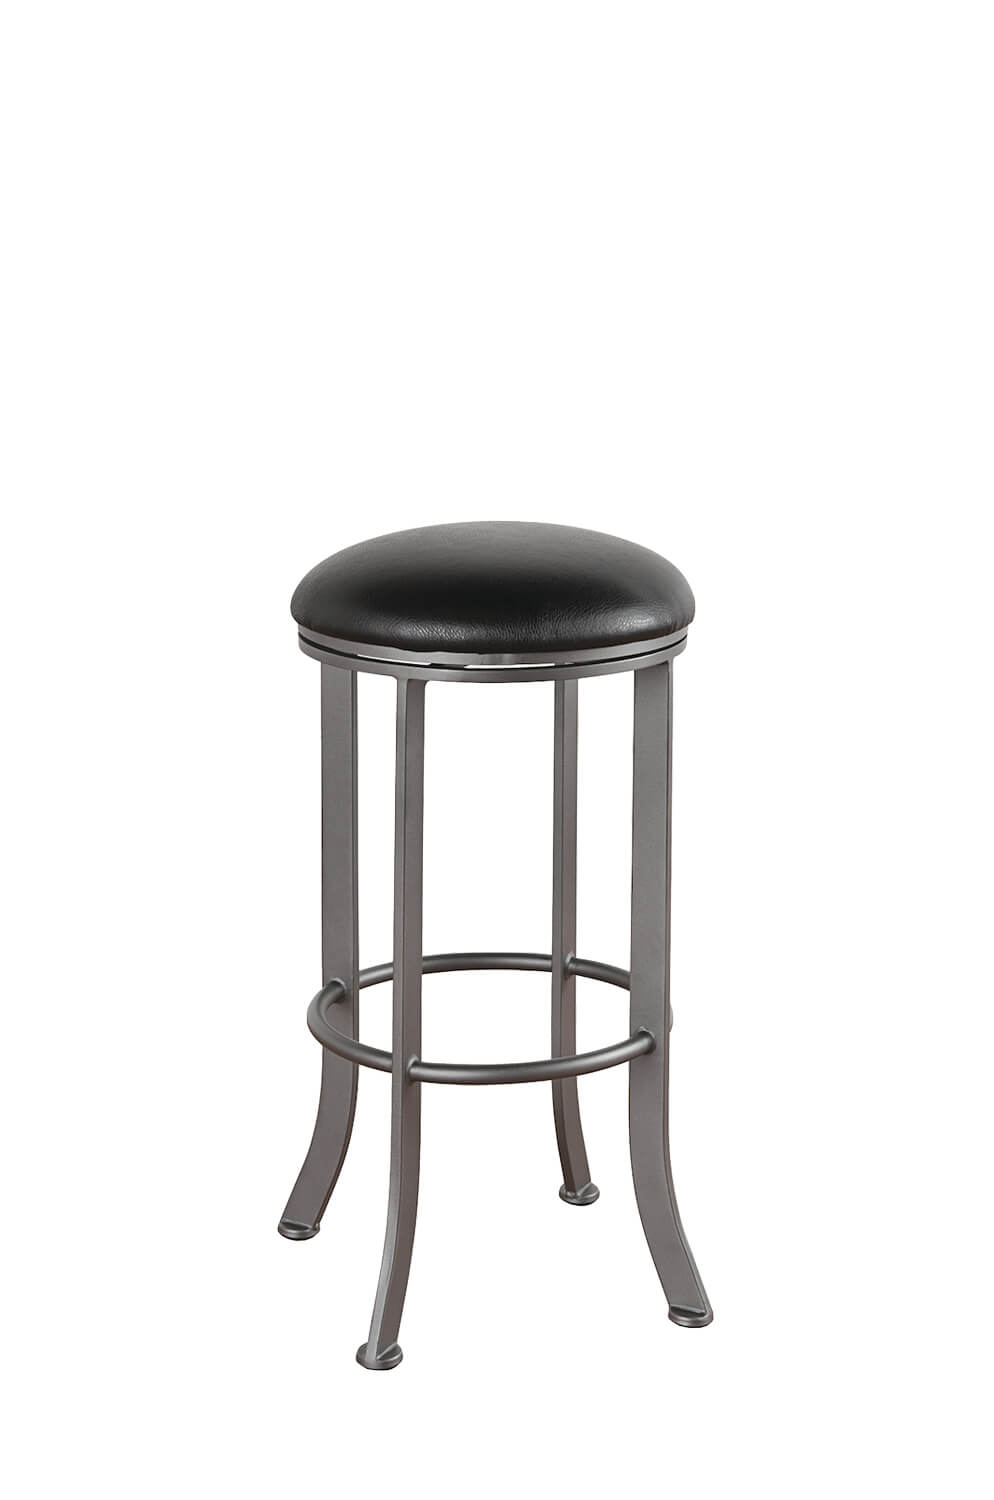 Prime Contemporary Bar Stools Halfy Round Seat Counter To Bar Gamerscity Chair Design For Home Gamerscityorg